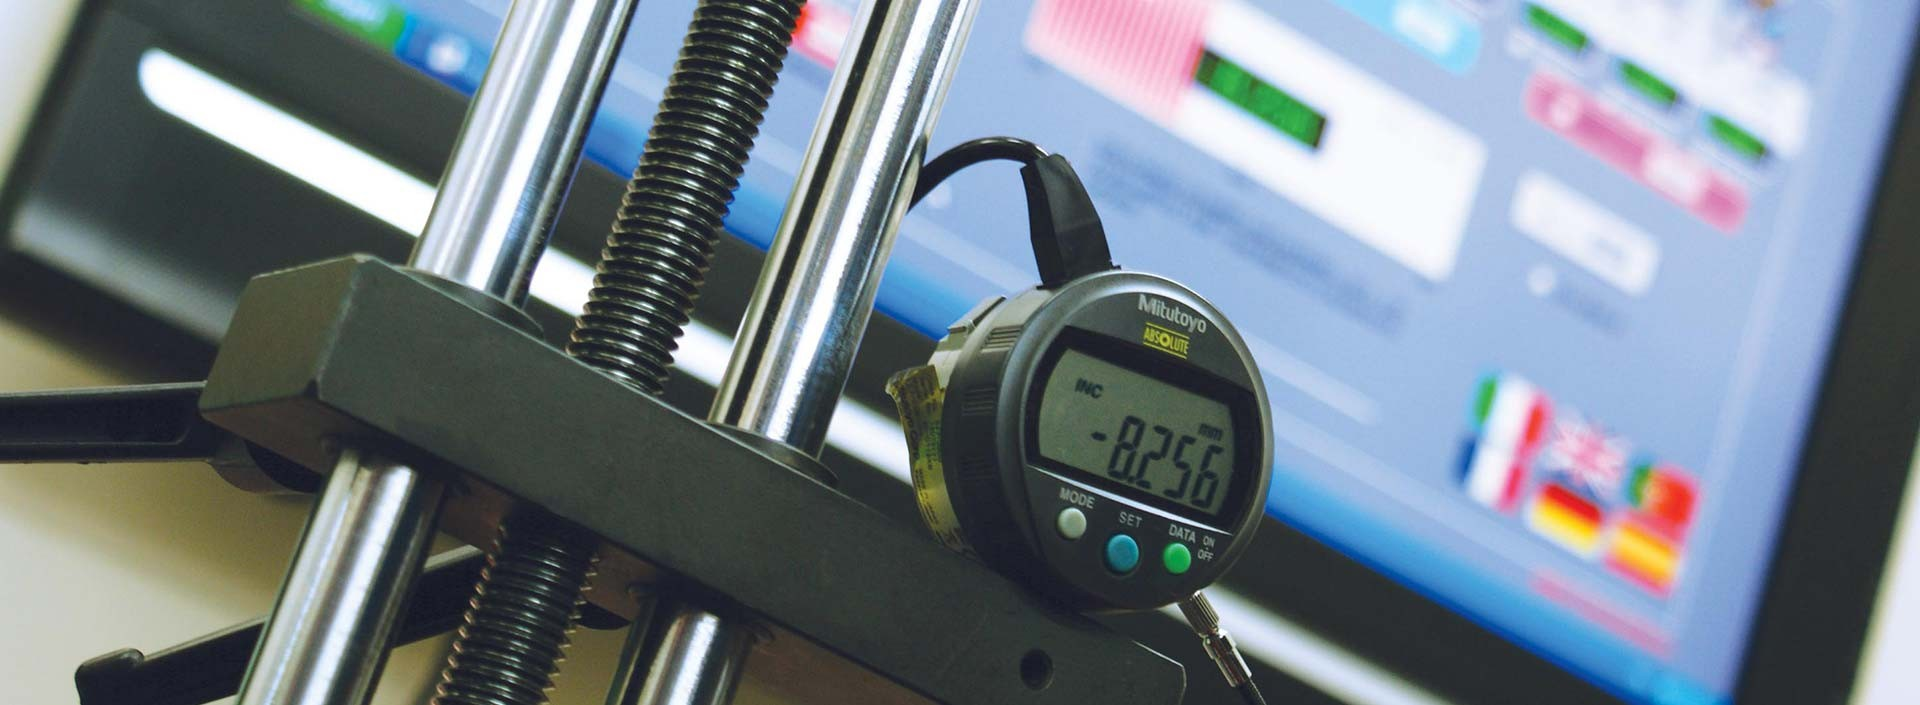 Diesel Test Equipment and Tooling